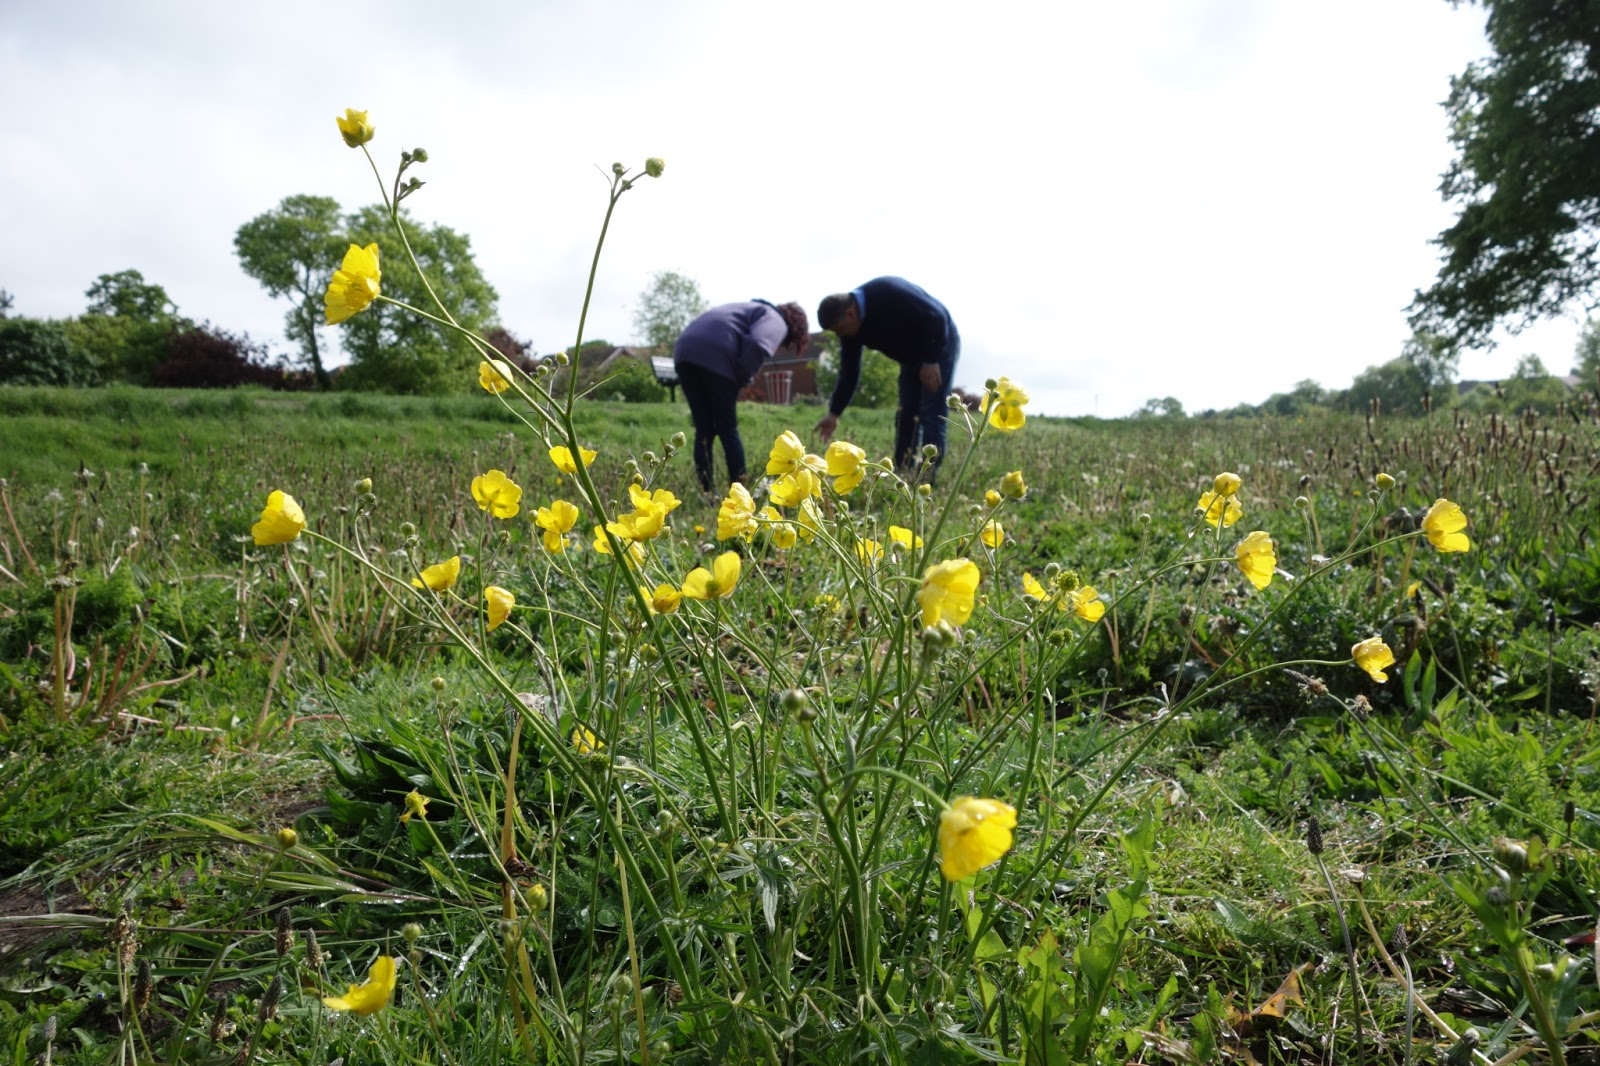 Urban pollinators what plants are flowering in our perennial meadows meadow buttercup ranunculus acris flowering time may june yello cup shaped flowers on tall branched stems finely dived leaves mightylinksfo